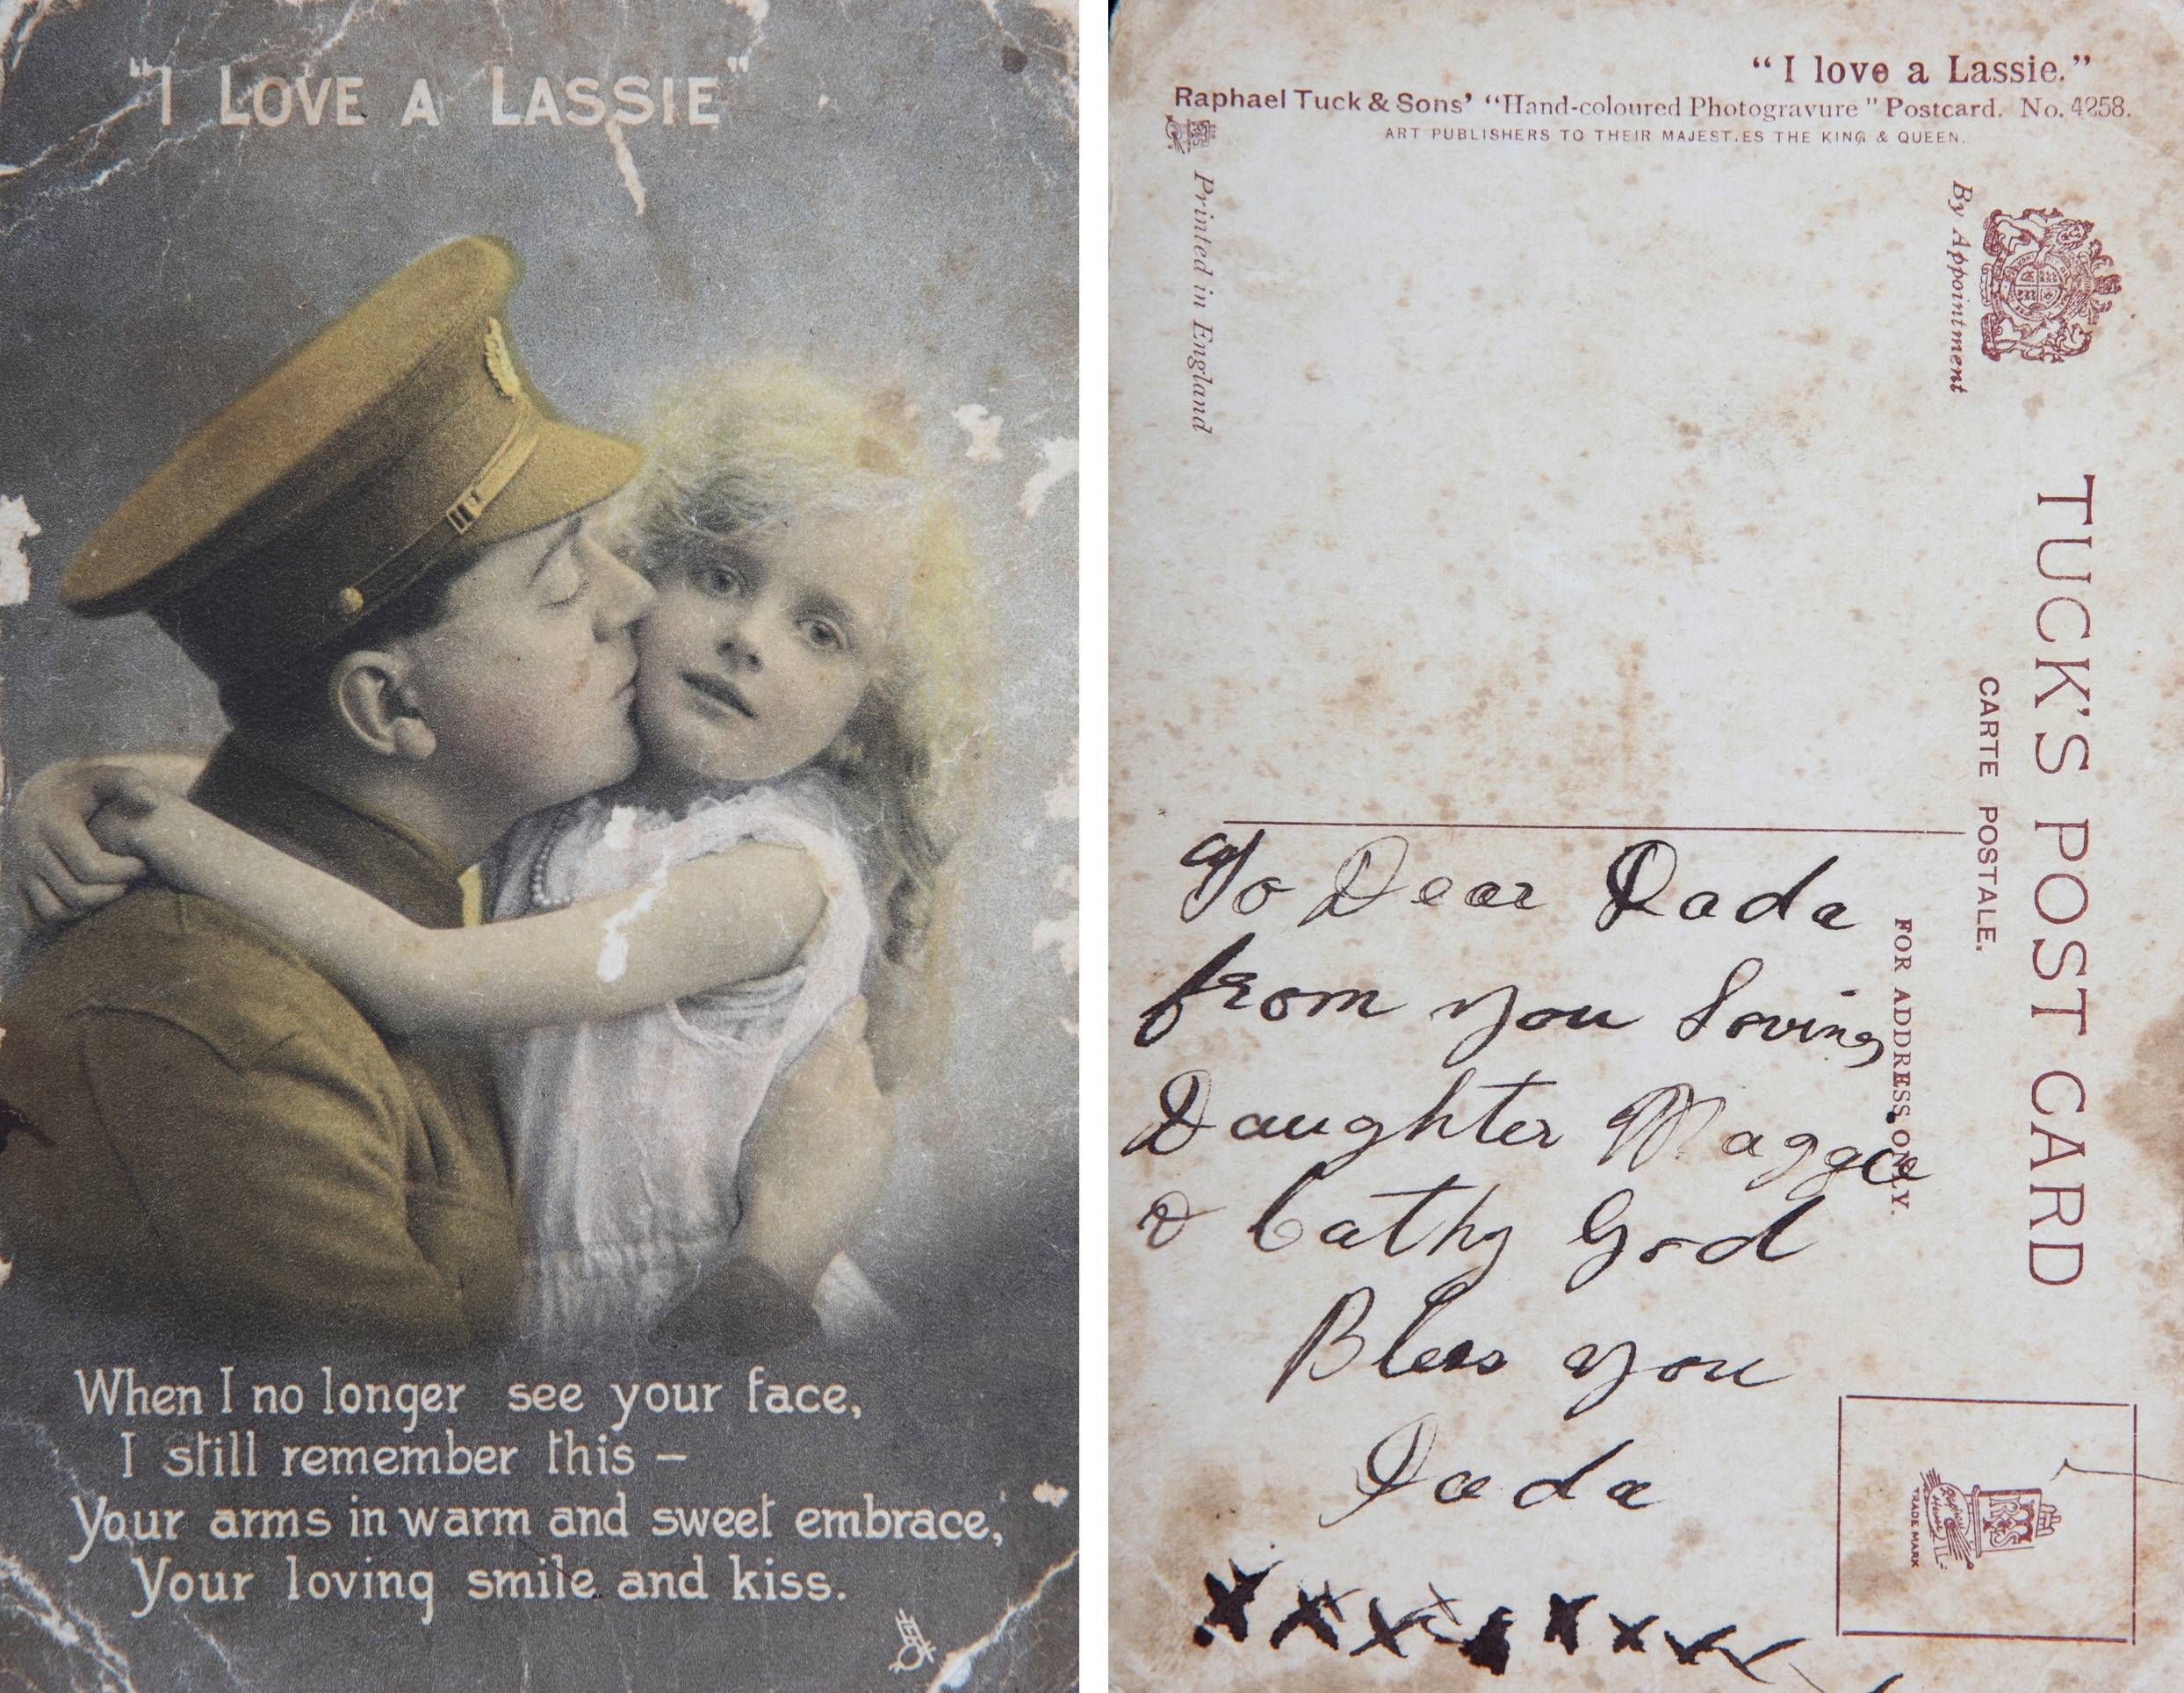 In this combination photo of the front and back of an undated card provided by the family, a daughter writes words to her father, World War I Australian soldier Andrew Bayne, from Brisbane, Australia. Andrew Bayne's journey took him to the battlefields of Bullecourt, Wytschaete, and Ypres before he was killed in action near Messines Ridge, Belgium on Aug. 19, 1917.